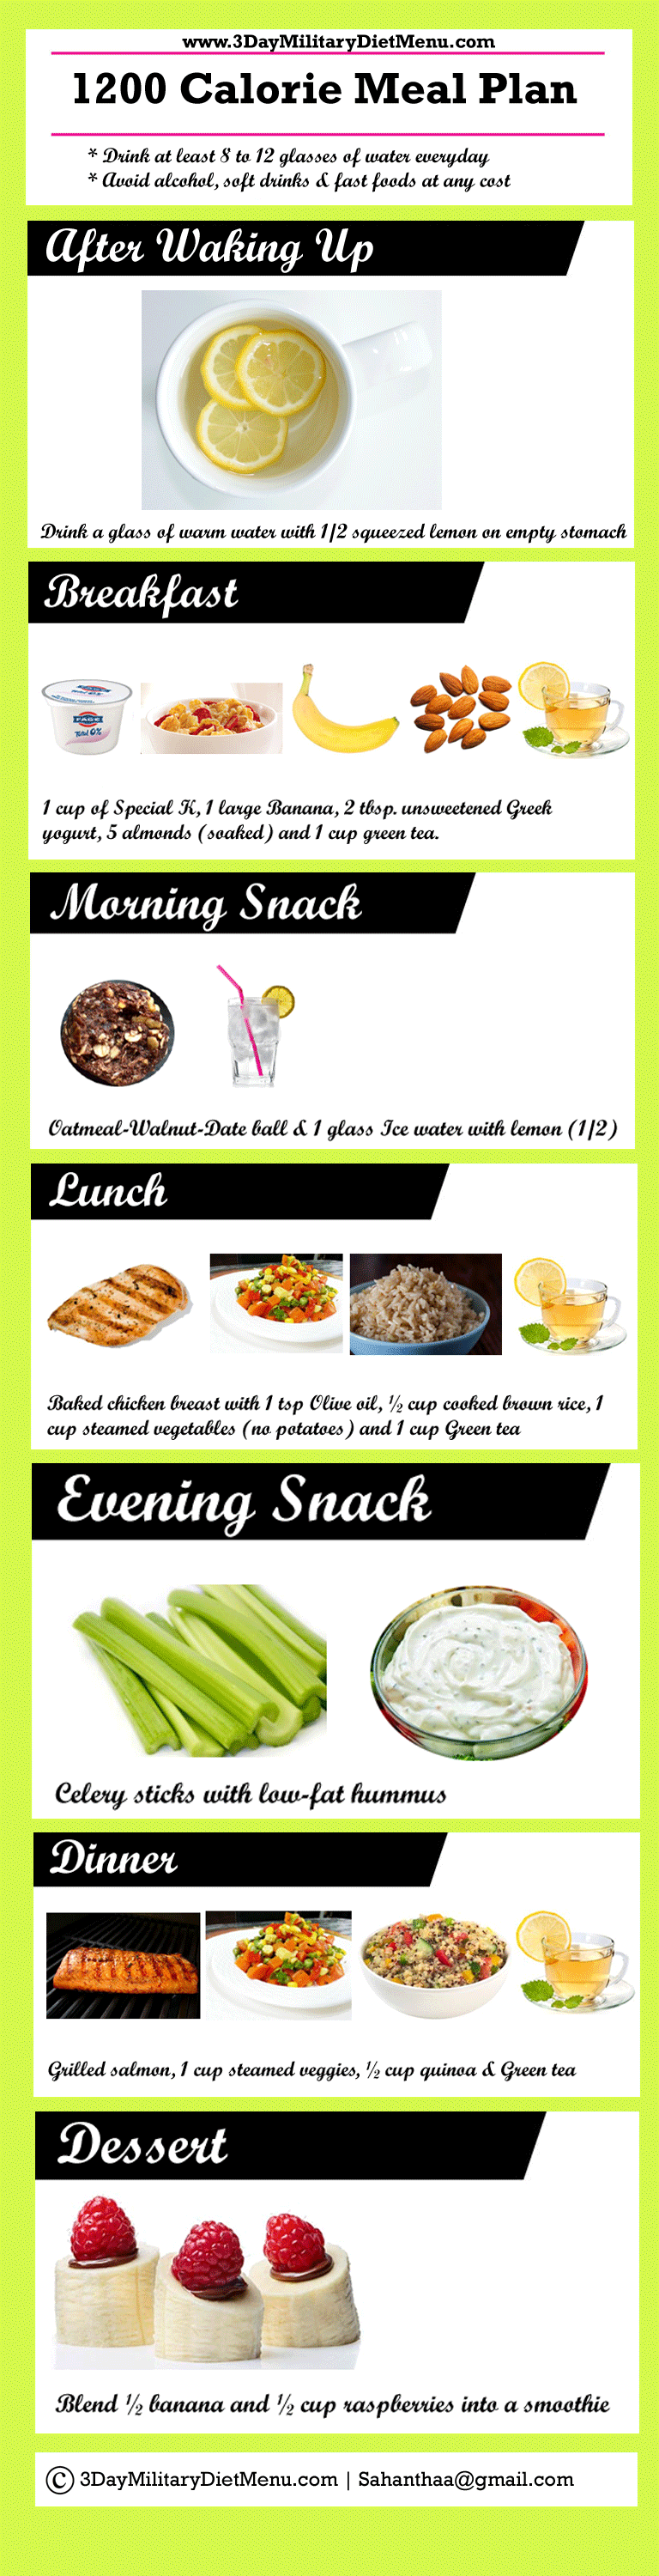 4 day military diet